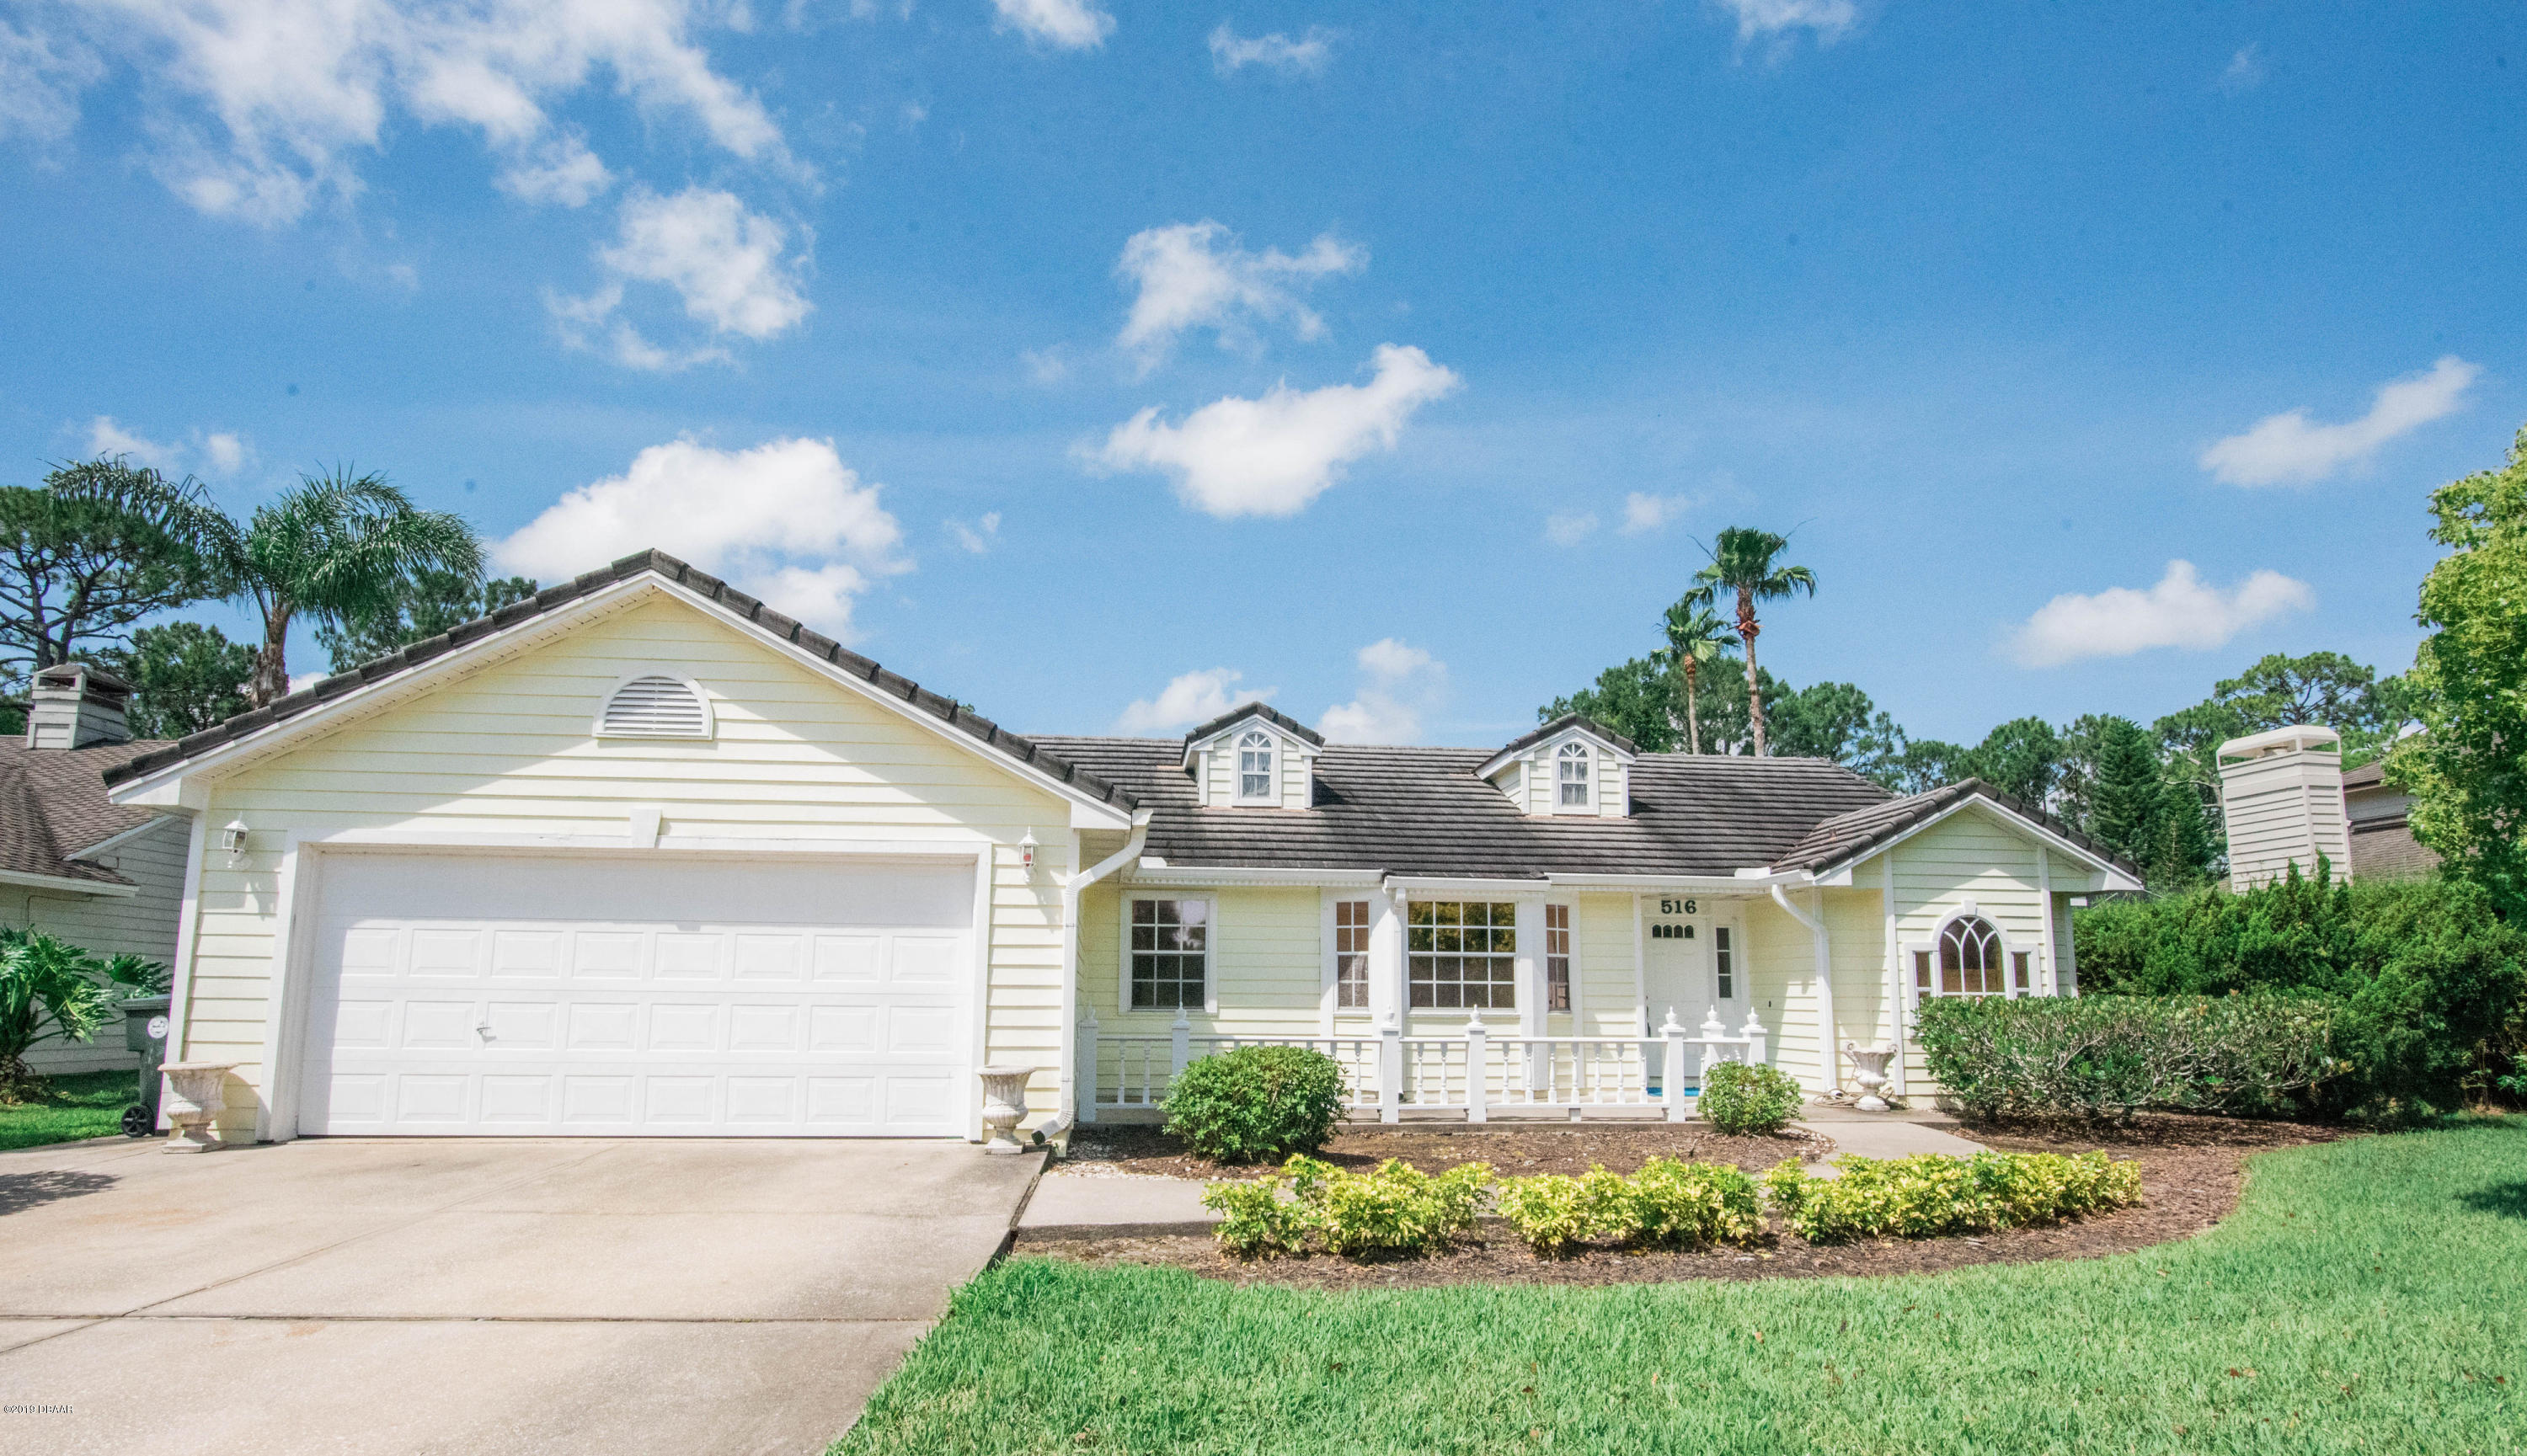 Photo of 516 Spotted Sandpiper Drive, Daytona Beach, FL 32119